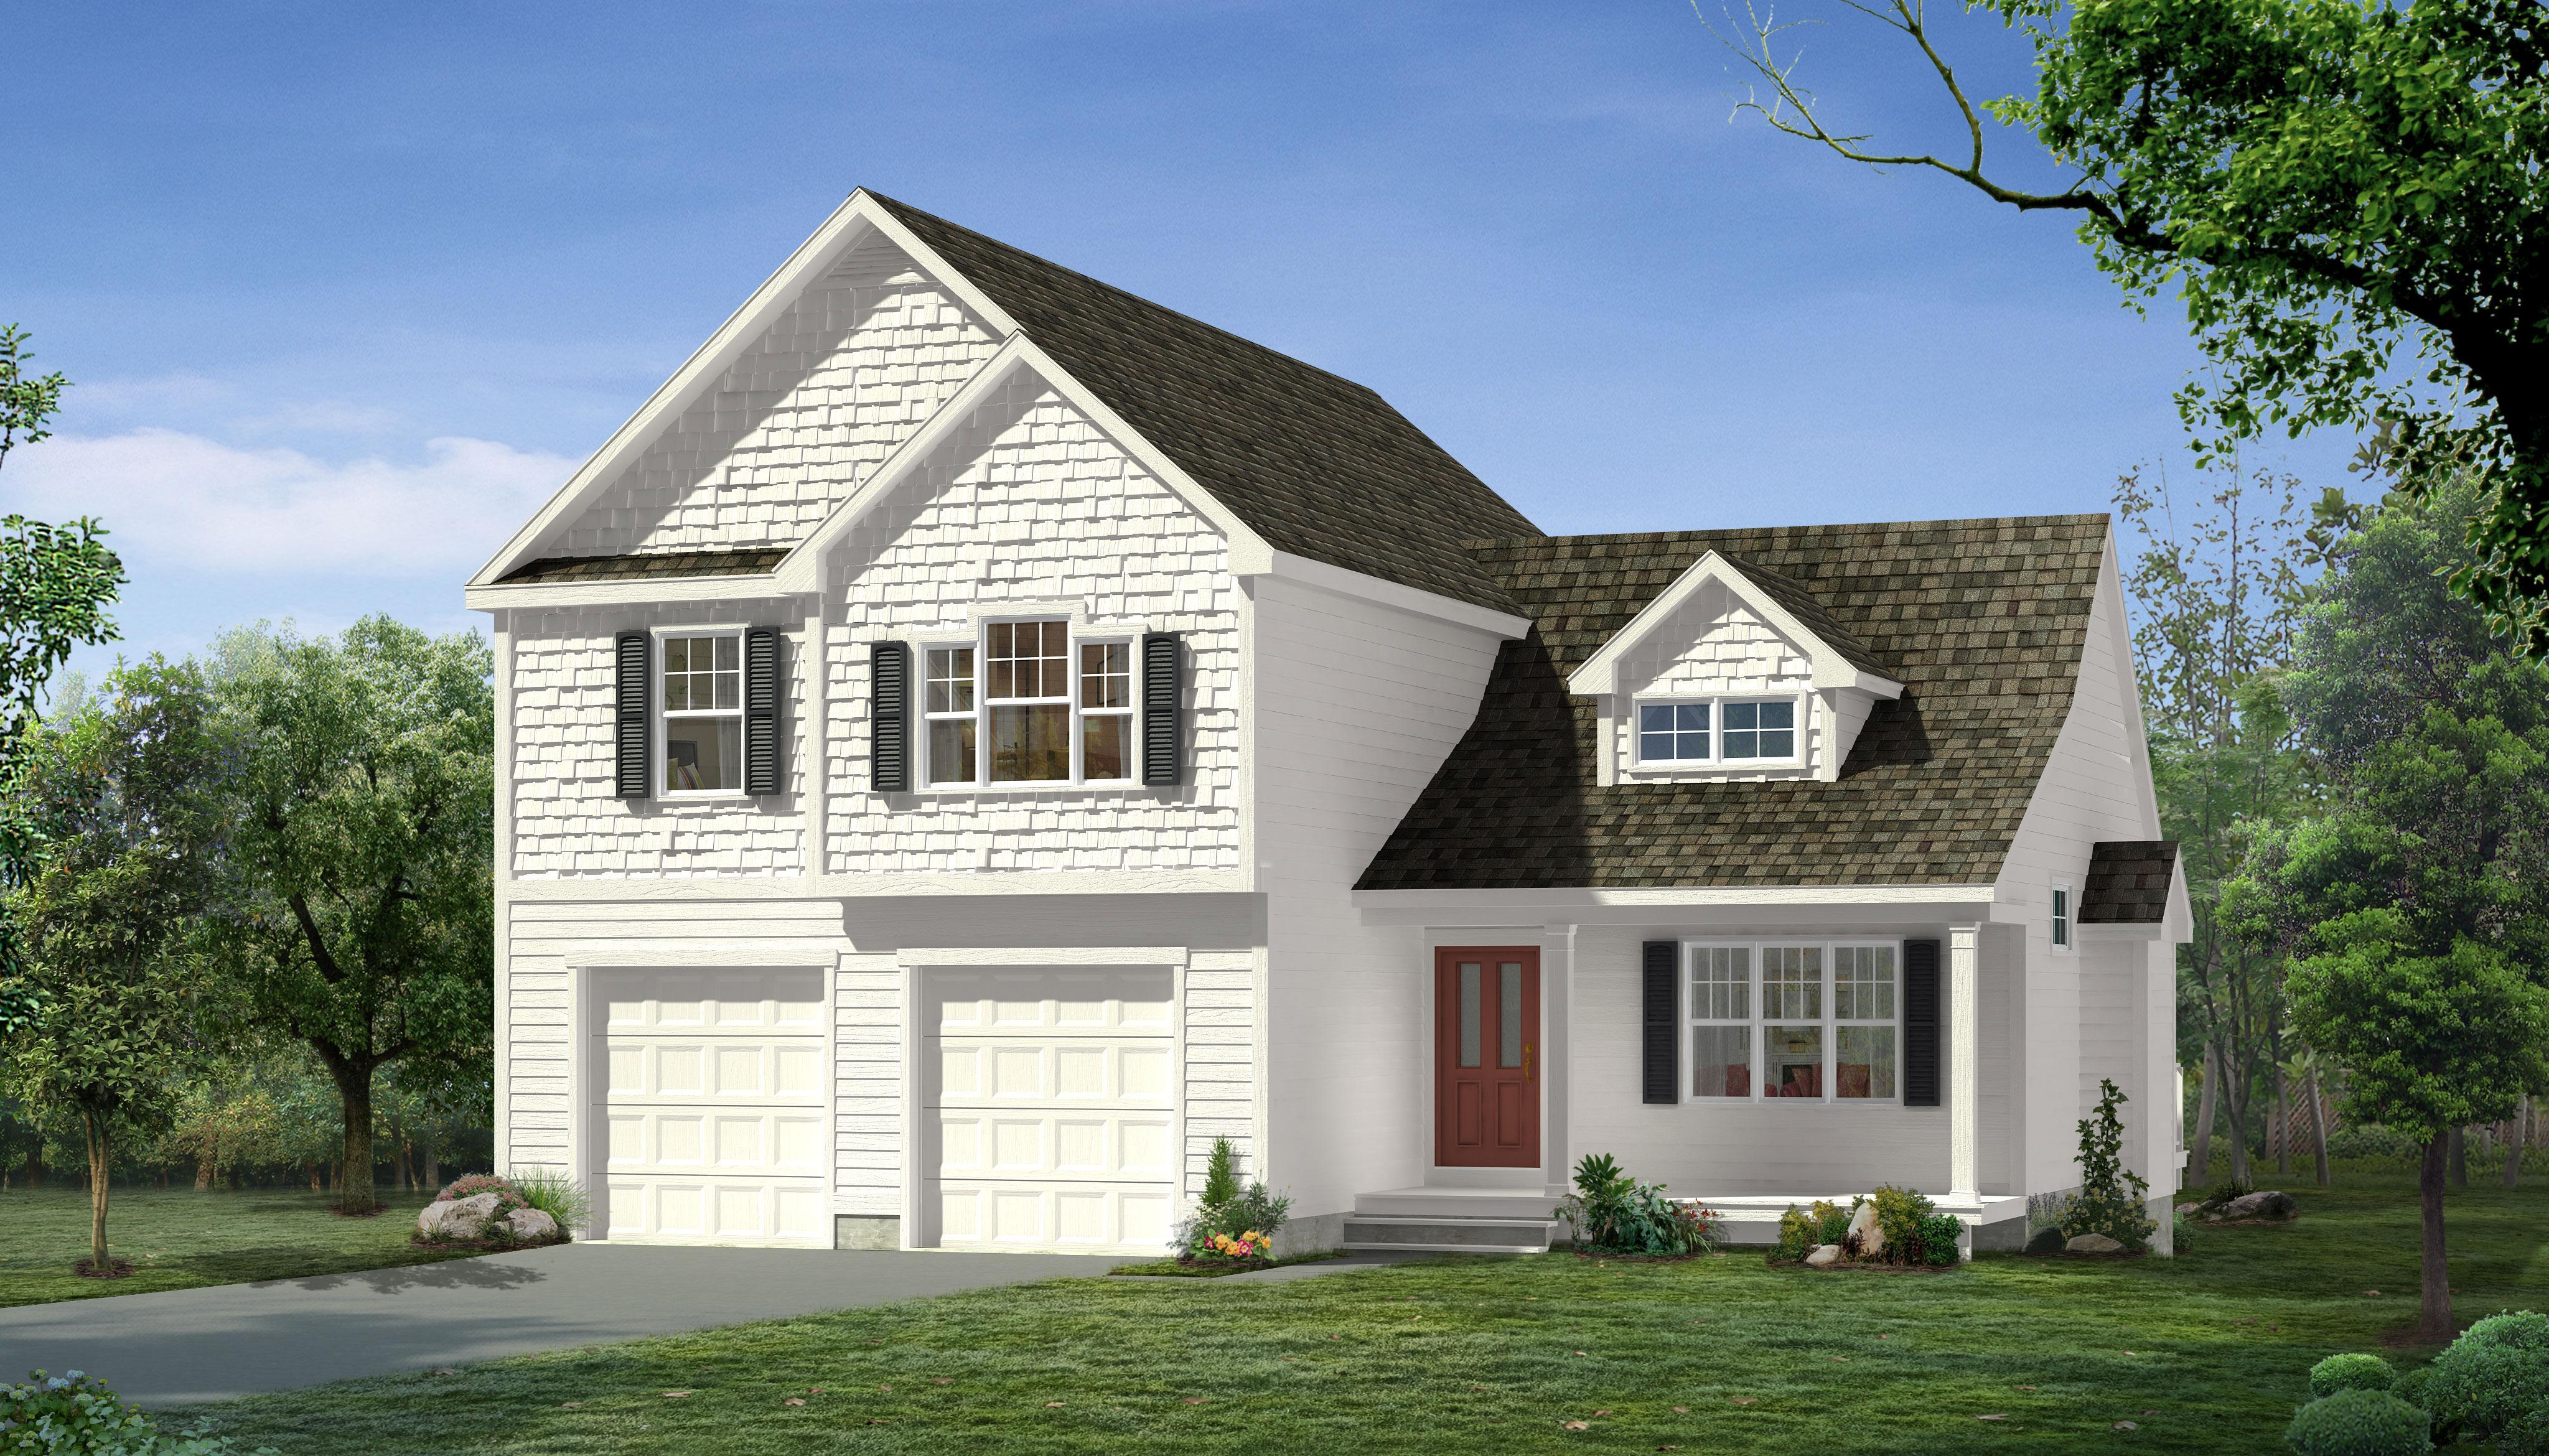 New Construction Homes & Plans in Easton, MA | 764 Homes